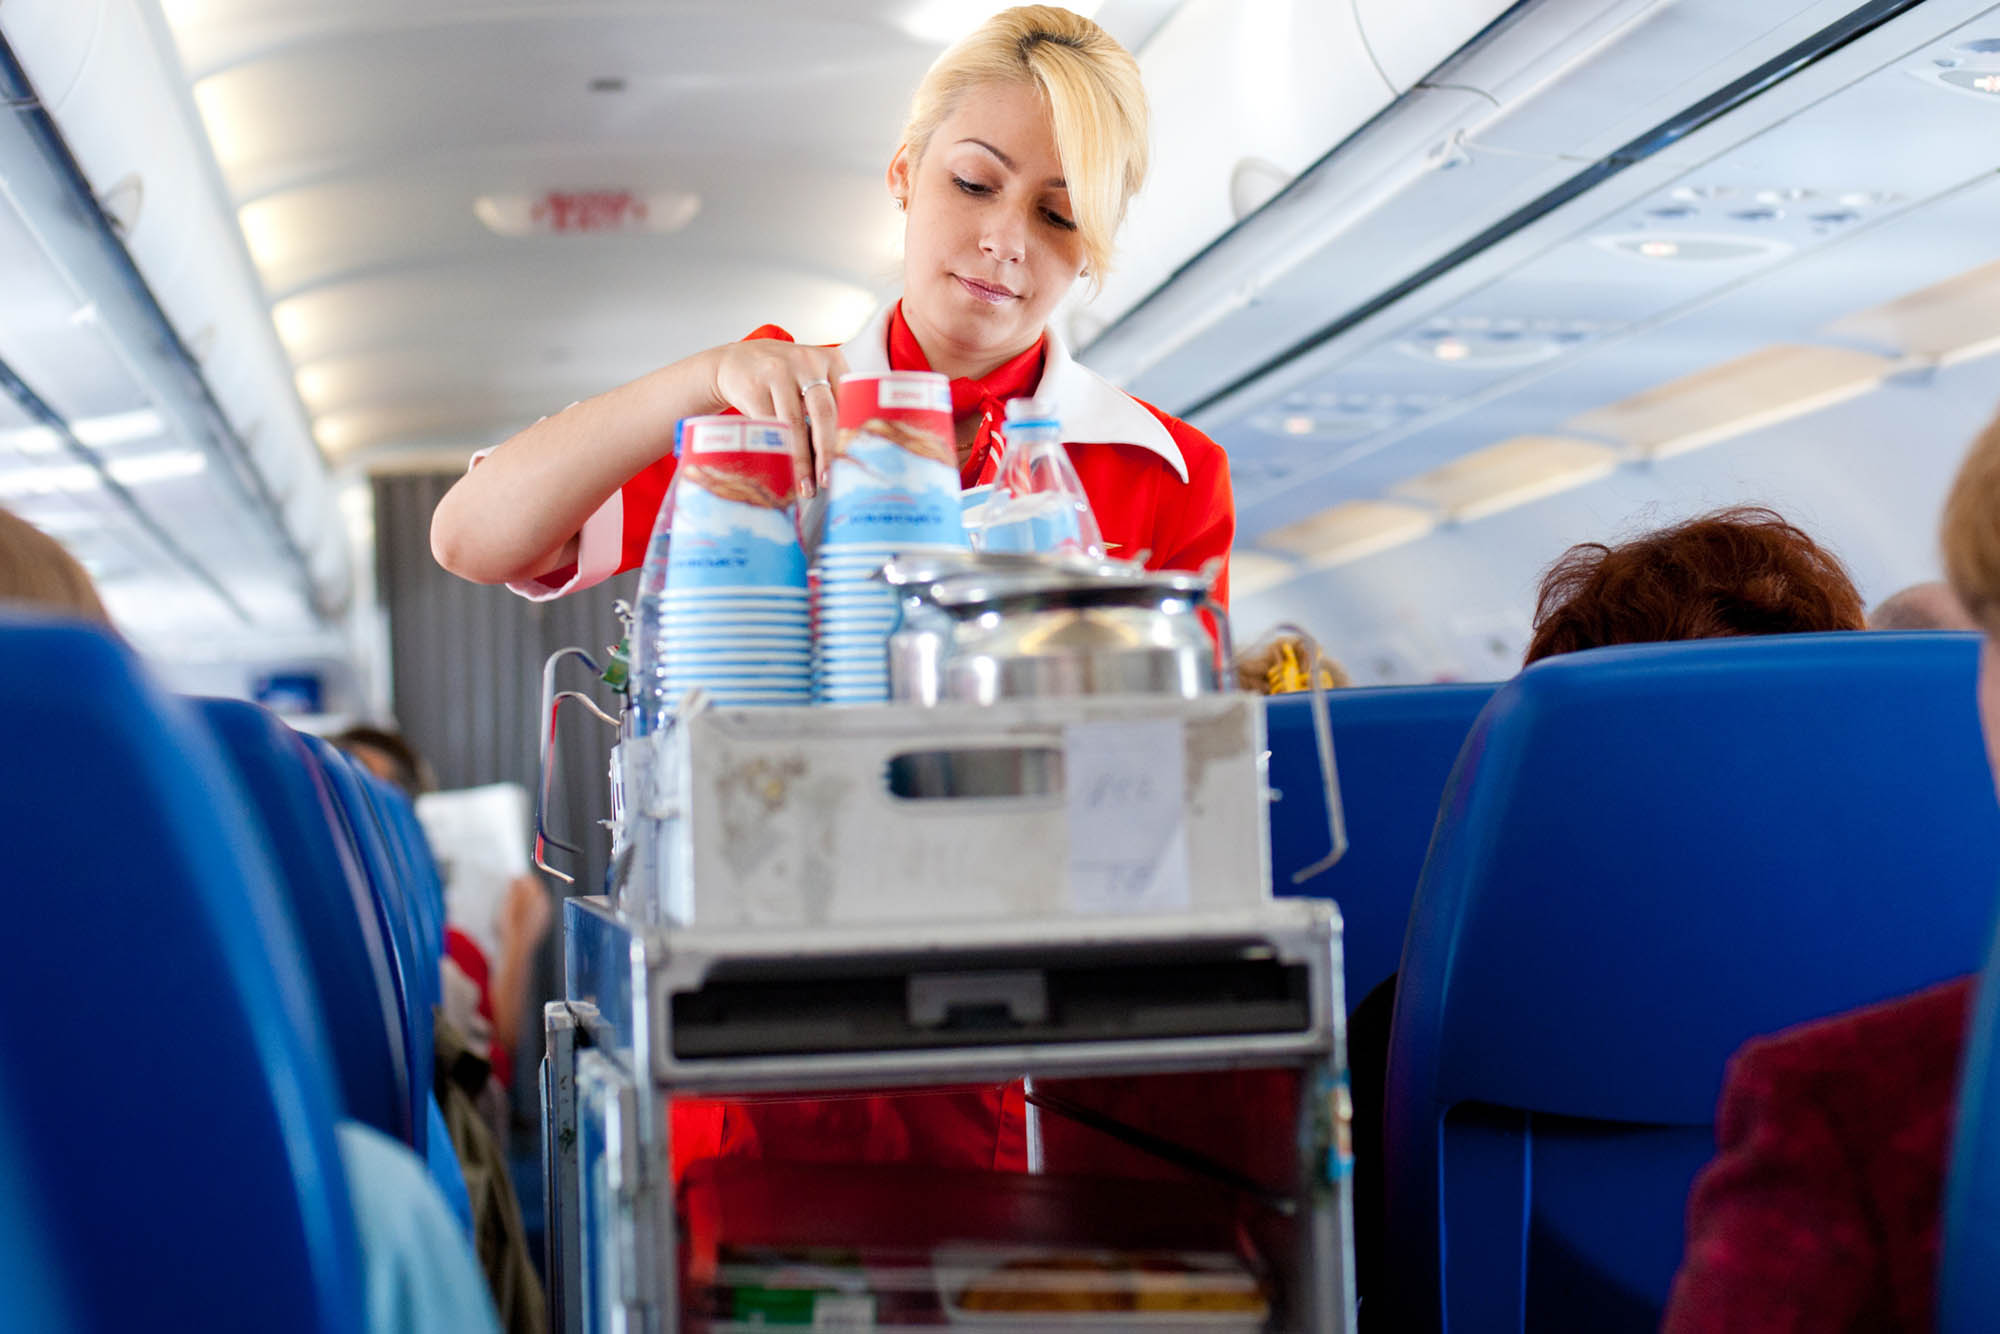 Coffee served on flights- don't do it